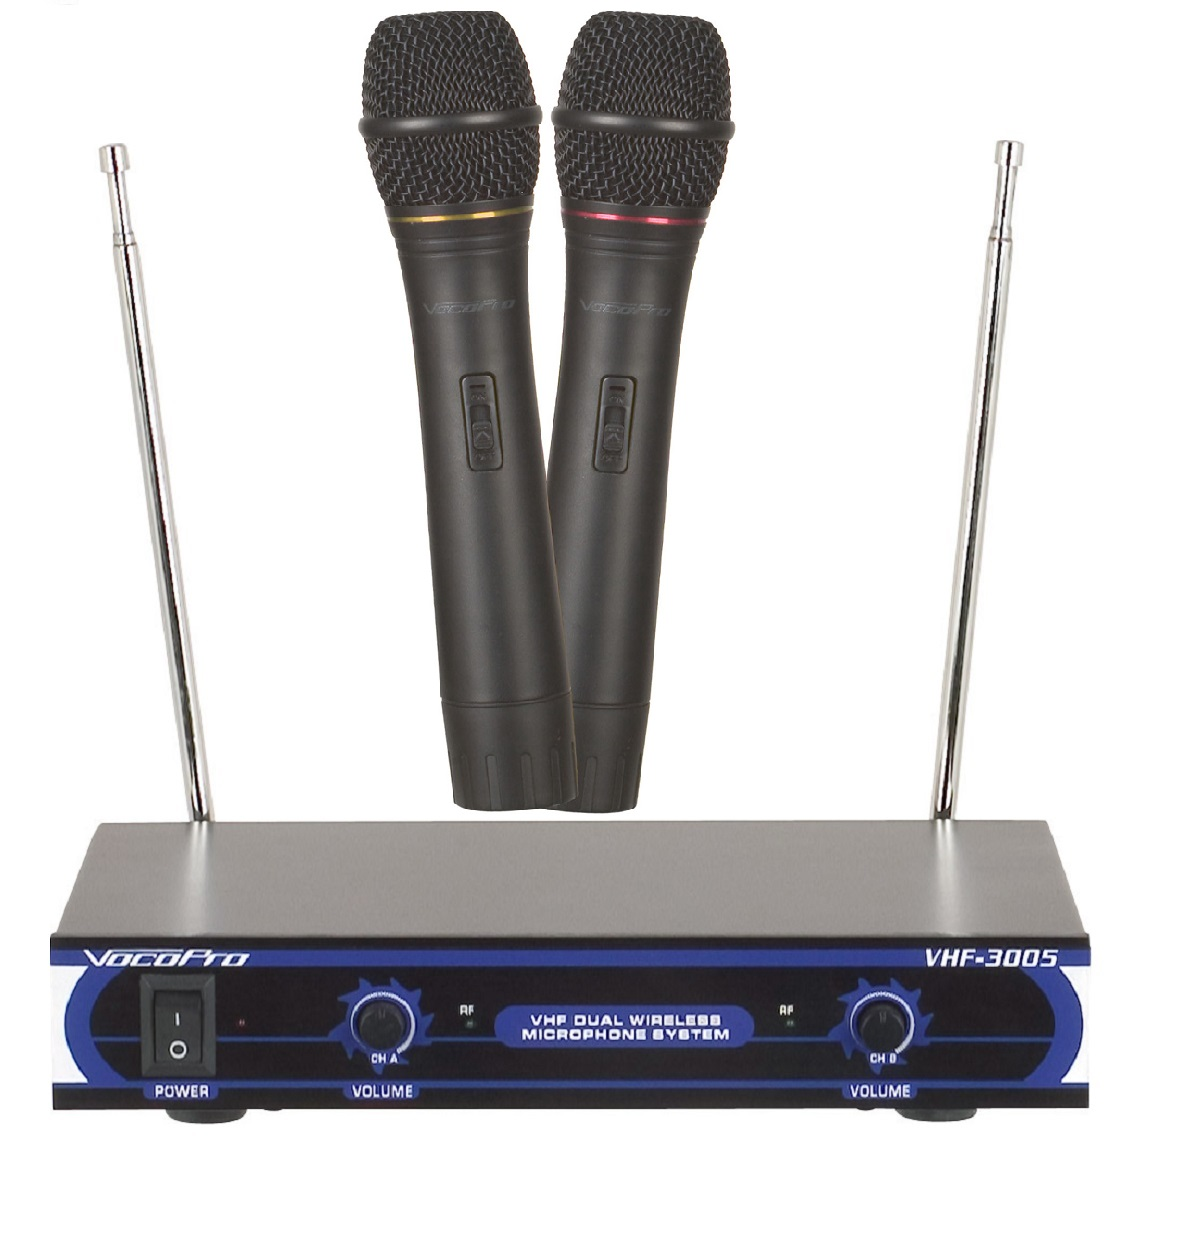 vocopro vhf 3005 dual channel vhf wireless microphone system. Black Bedroom Furniture Sets. Home Design Ideas